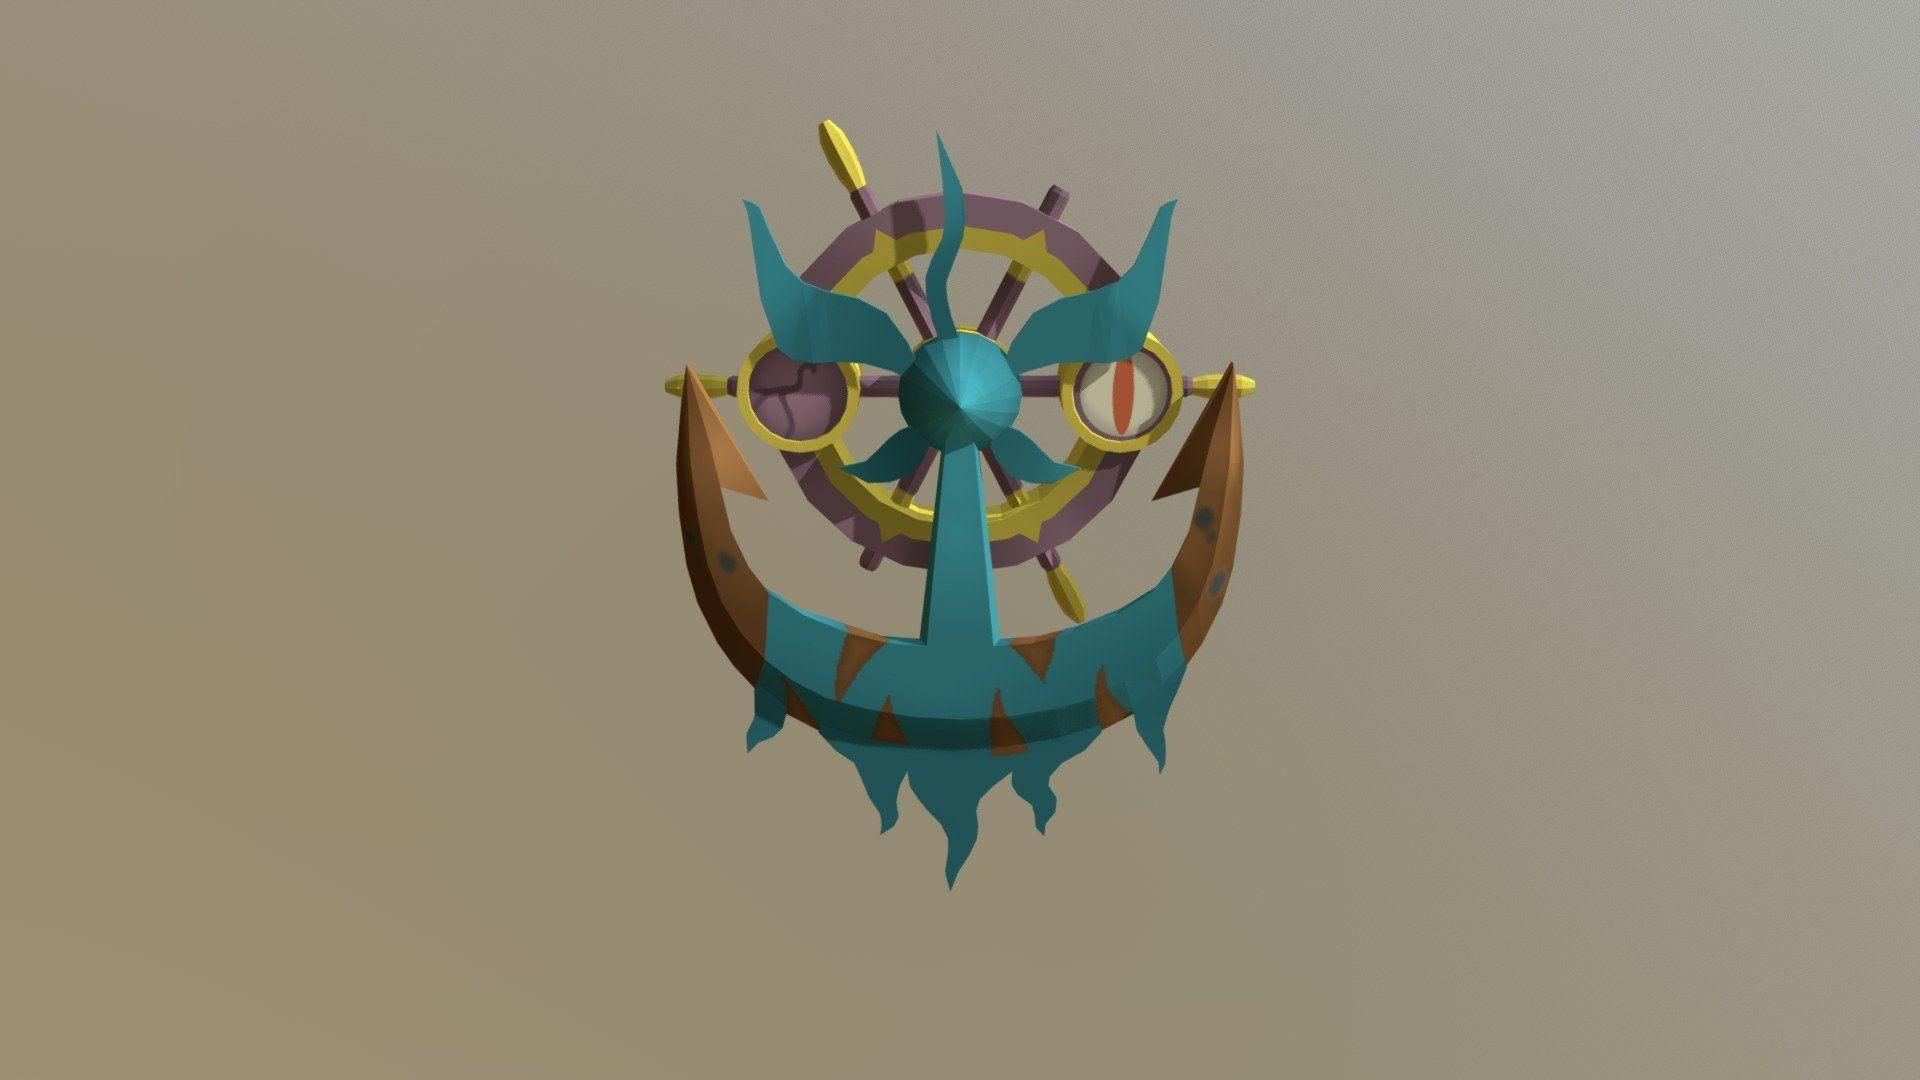 Dhelmise - 3D model by Deo3560 (@Deo3560) - Sketchfab